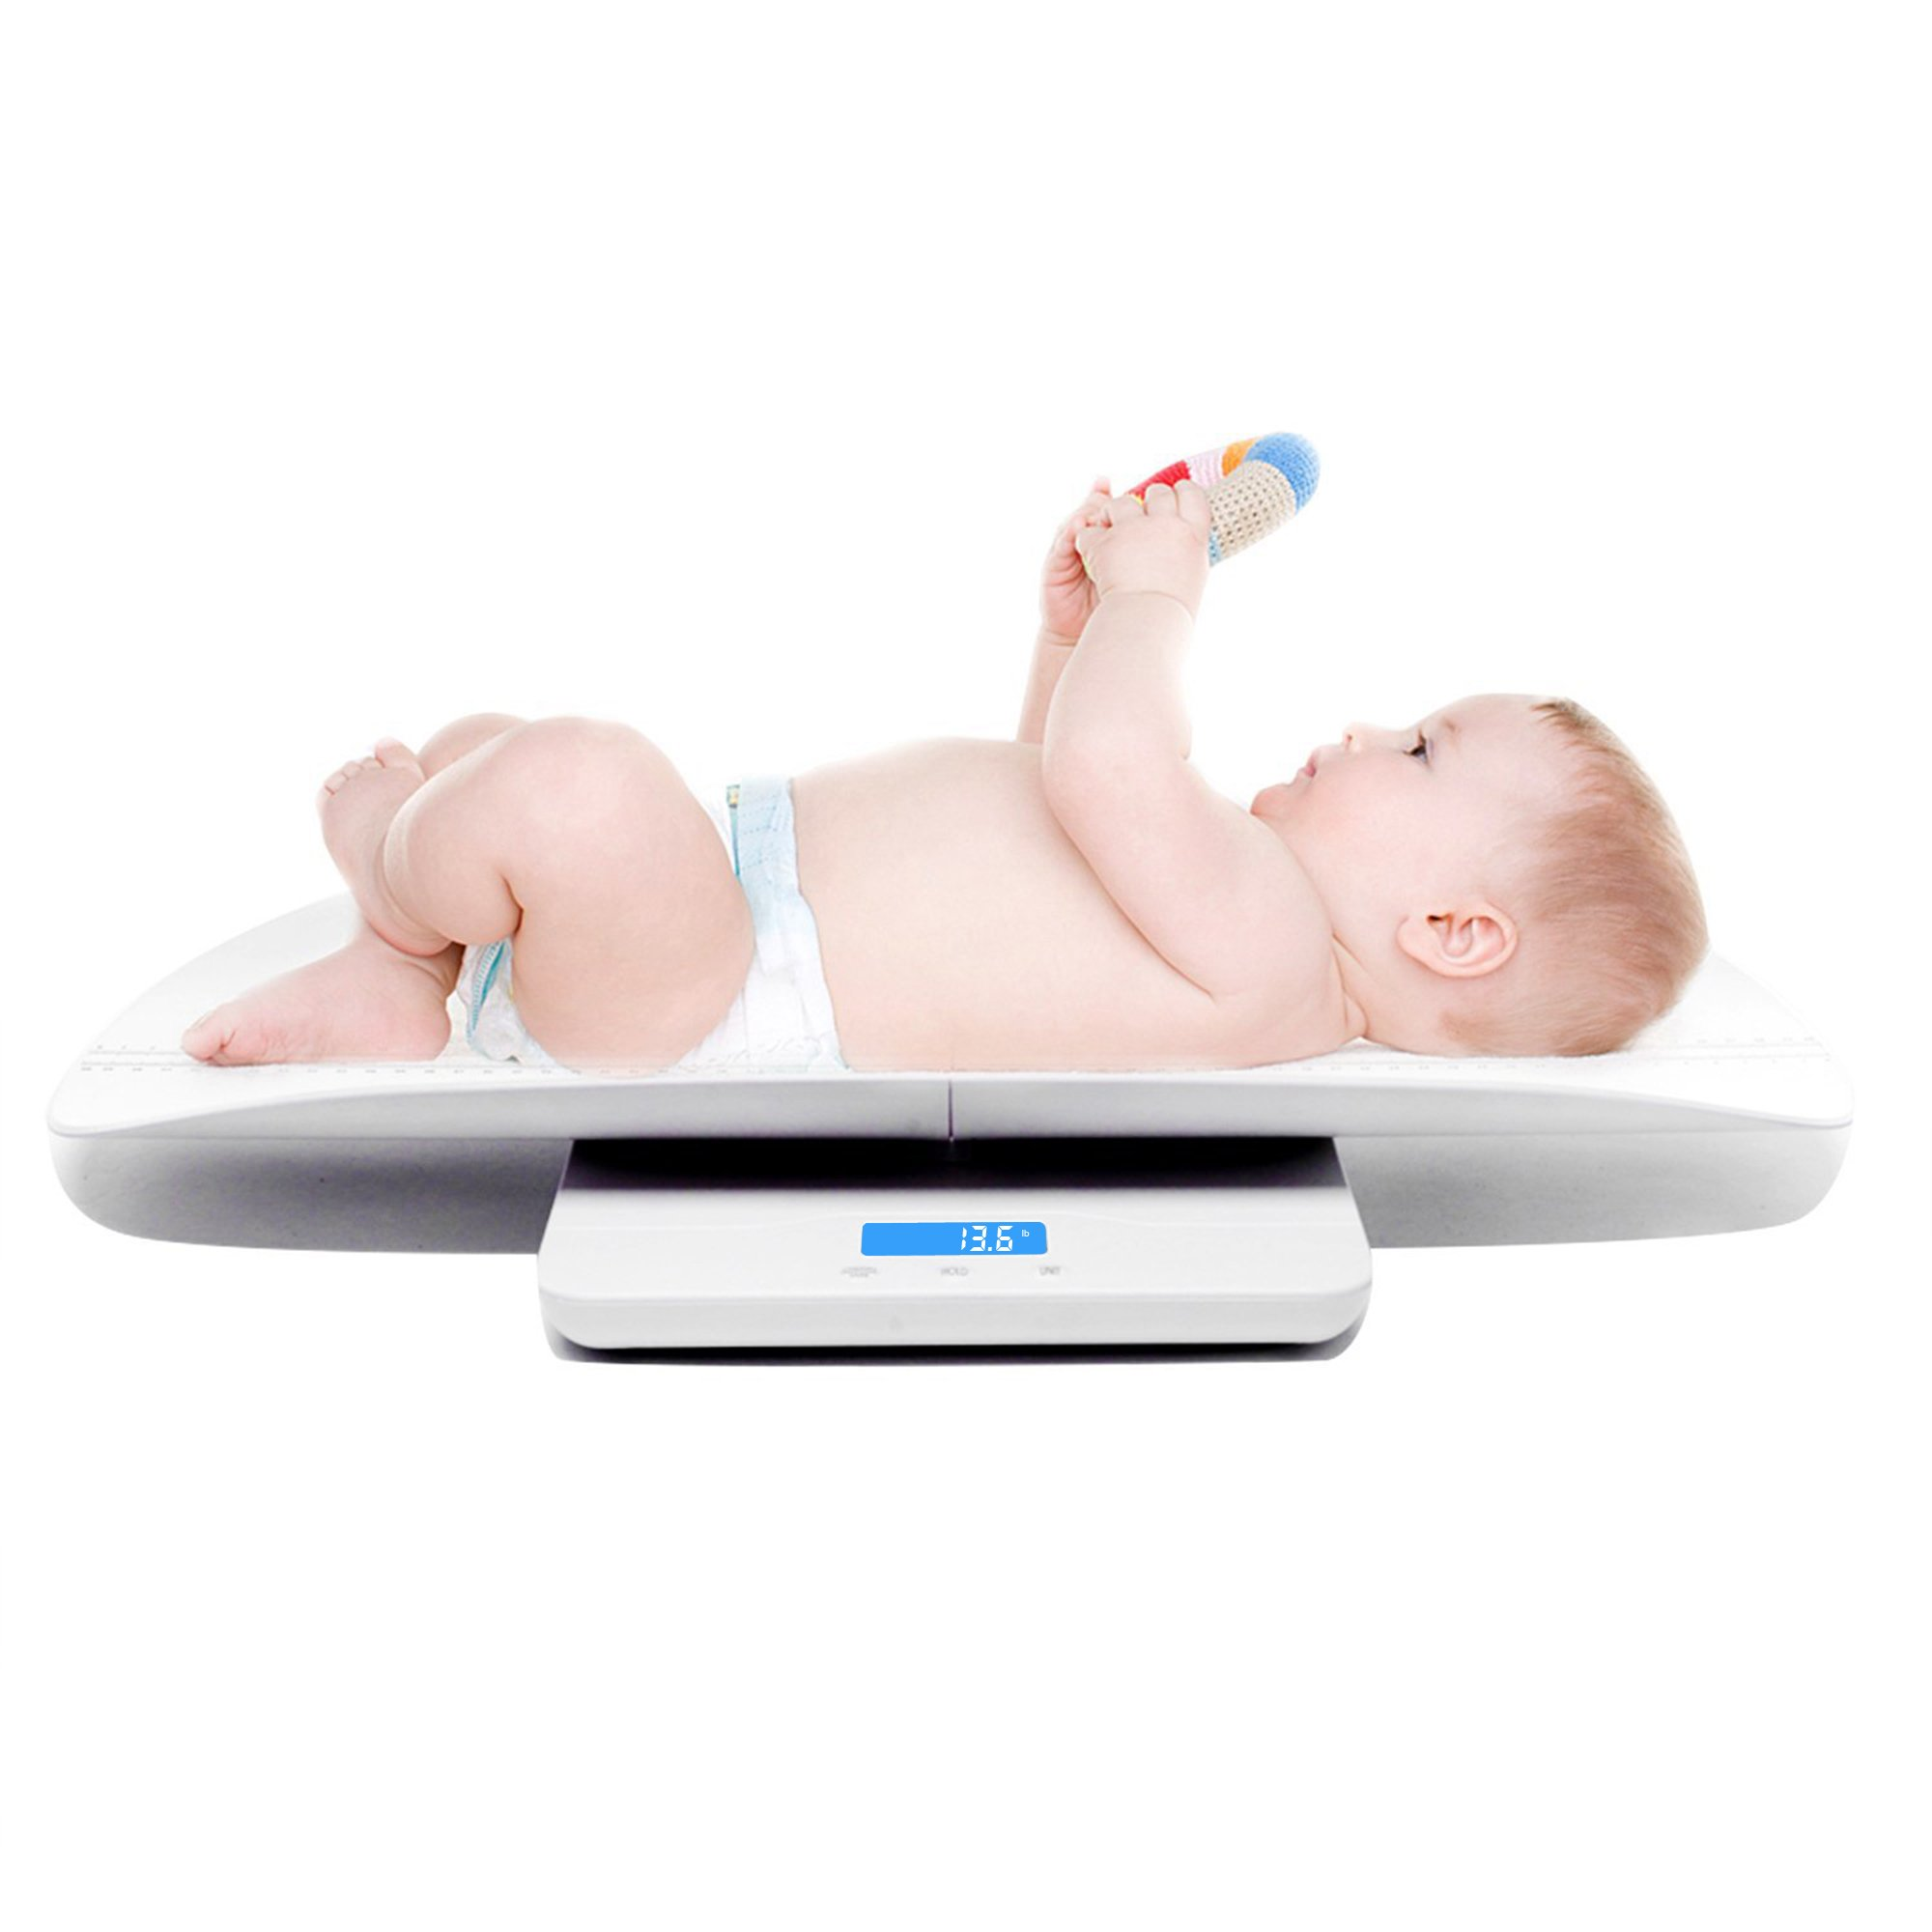 Baby Scale Multi-Function Accurately Digital Baby Infant Toddler Scale with Height Tray Weight(Max:220lbs) and Height(Max:60cm) 2-in-1 Baby to Toddler Scale by iSnow-Med